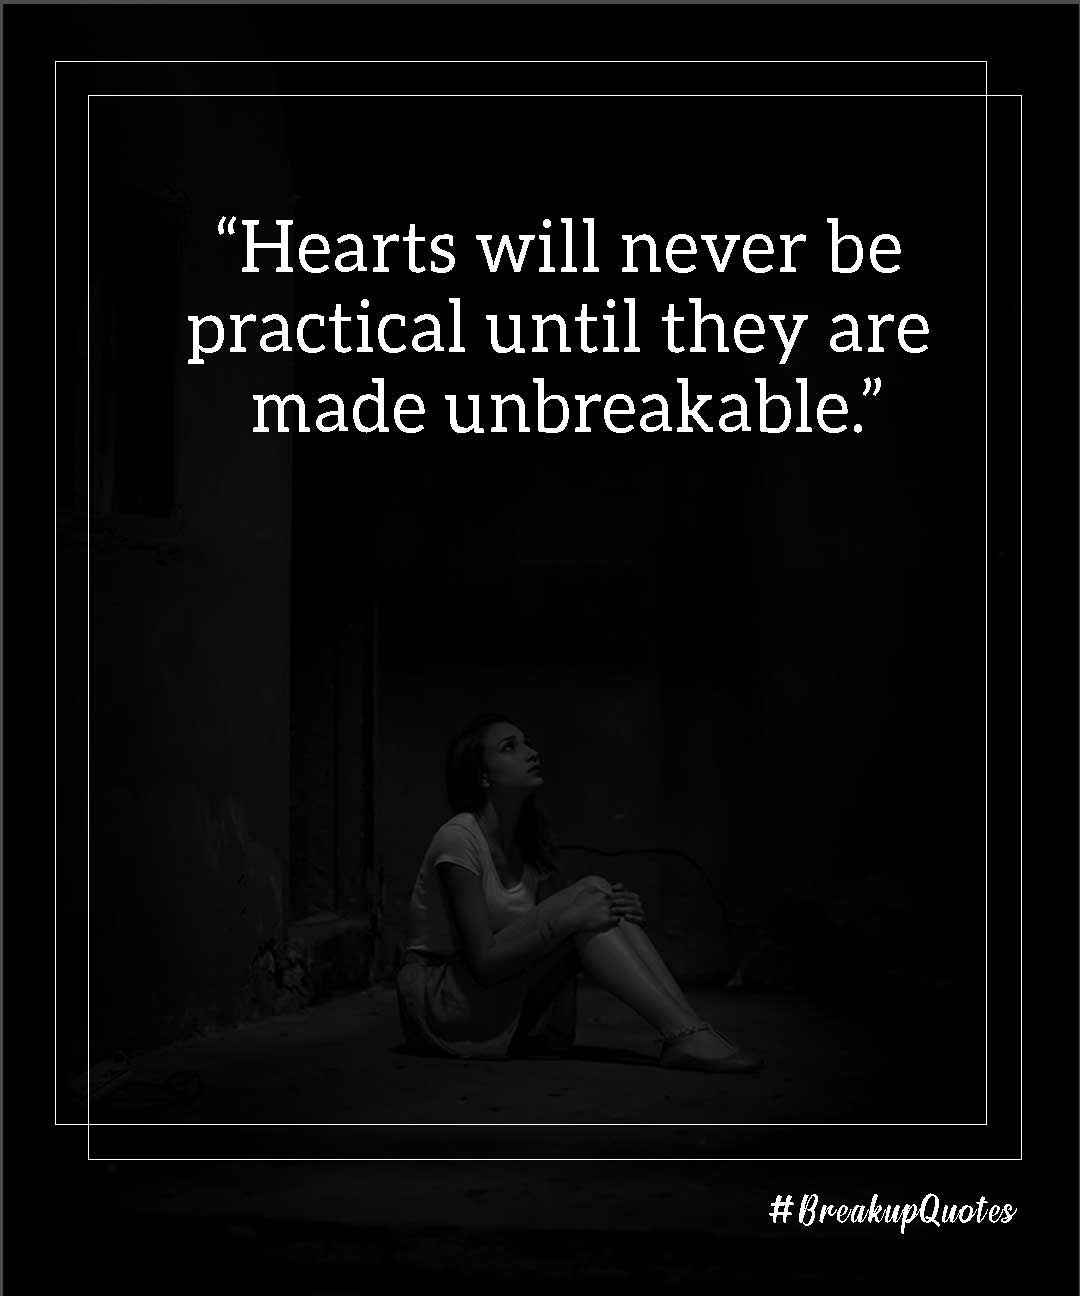 Here are some heartbroken quotes and break up quotes that might be able to offer some insight and appeal you to move on by forgetting your pain. #quotes #brokenheartquotes #dailyquotes #lovequotes #relationshipquotes #couplequotes #lovesayings